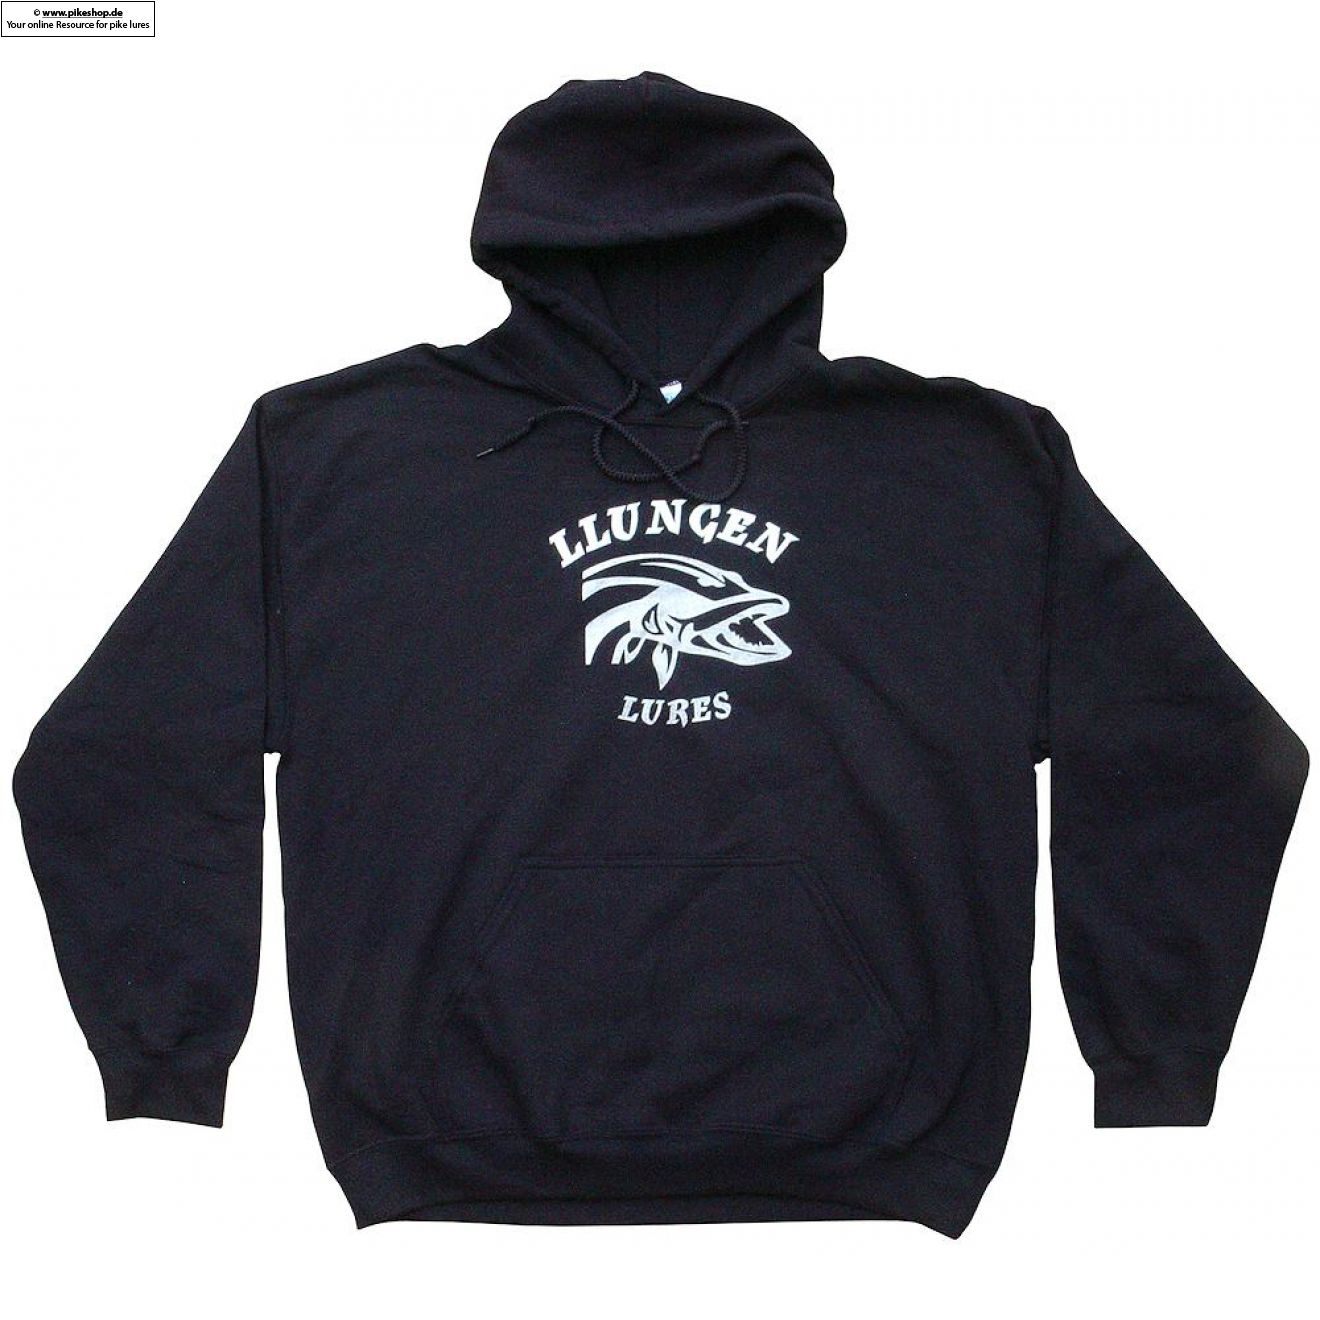 Llungen Lures Hooded Sweatshirt -Größe L